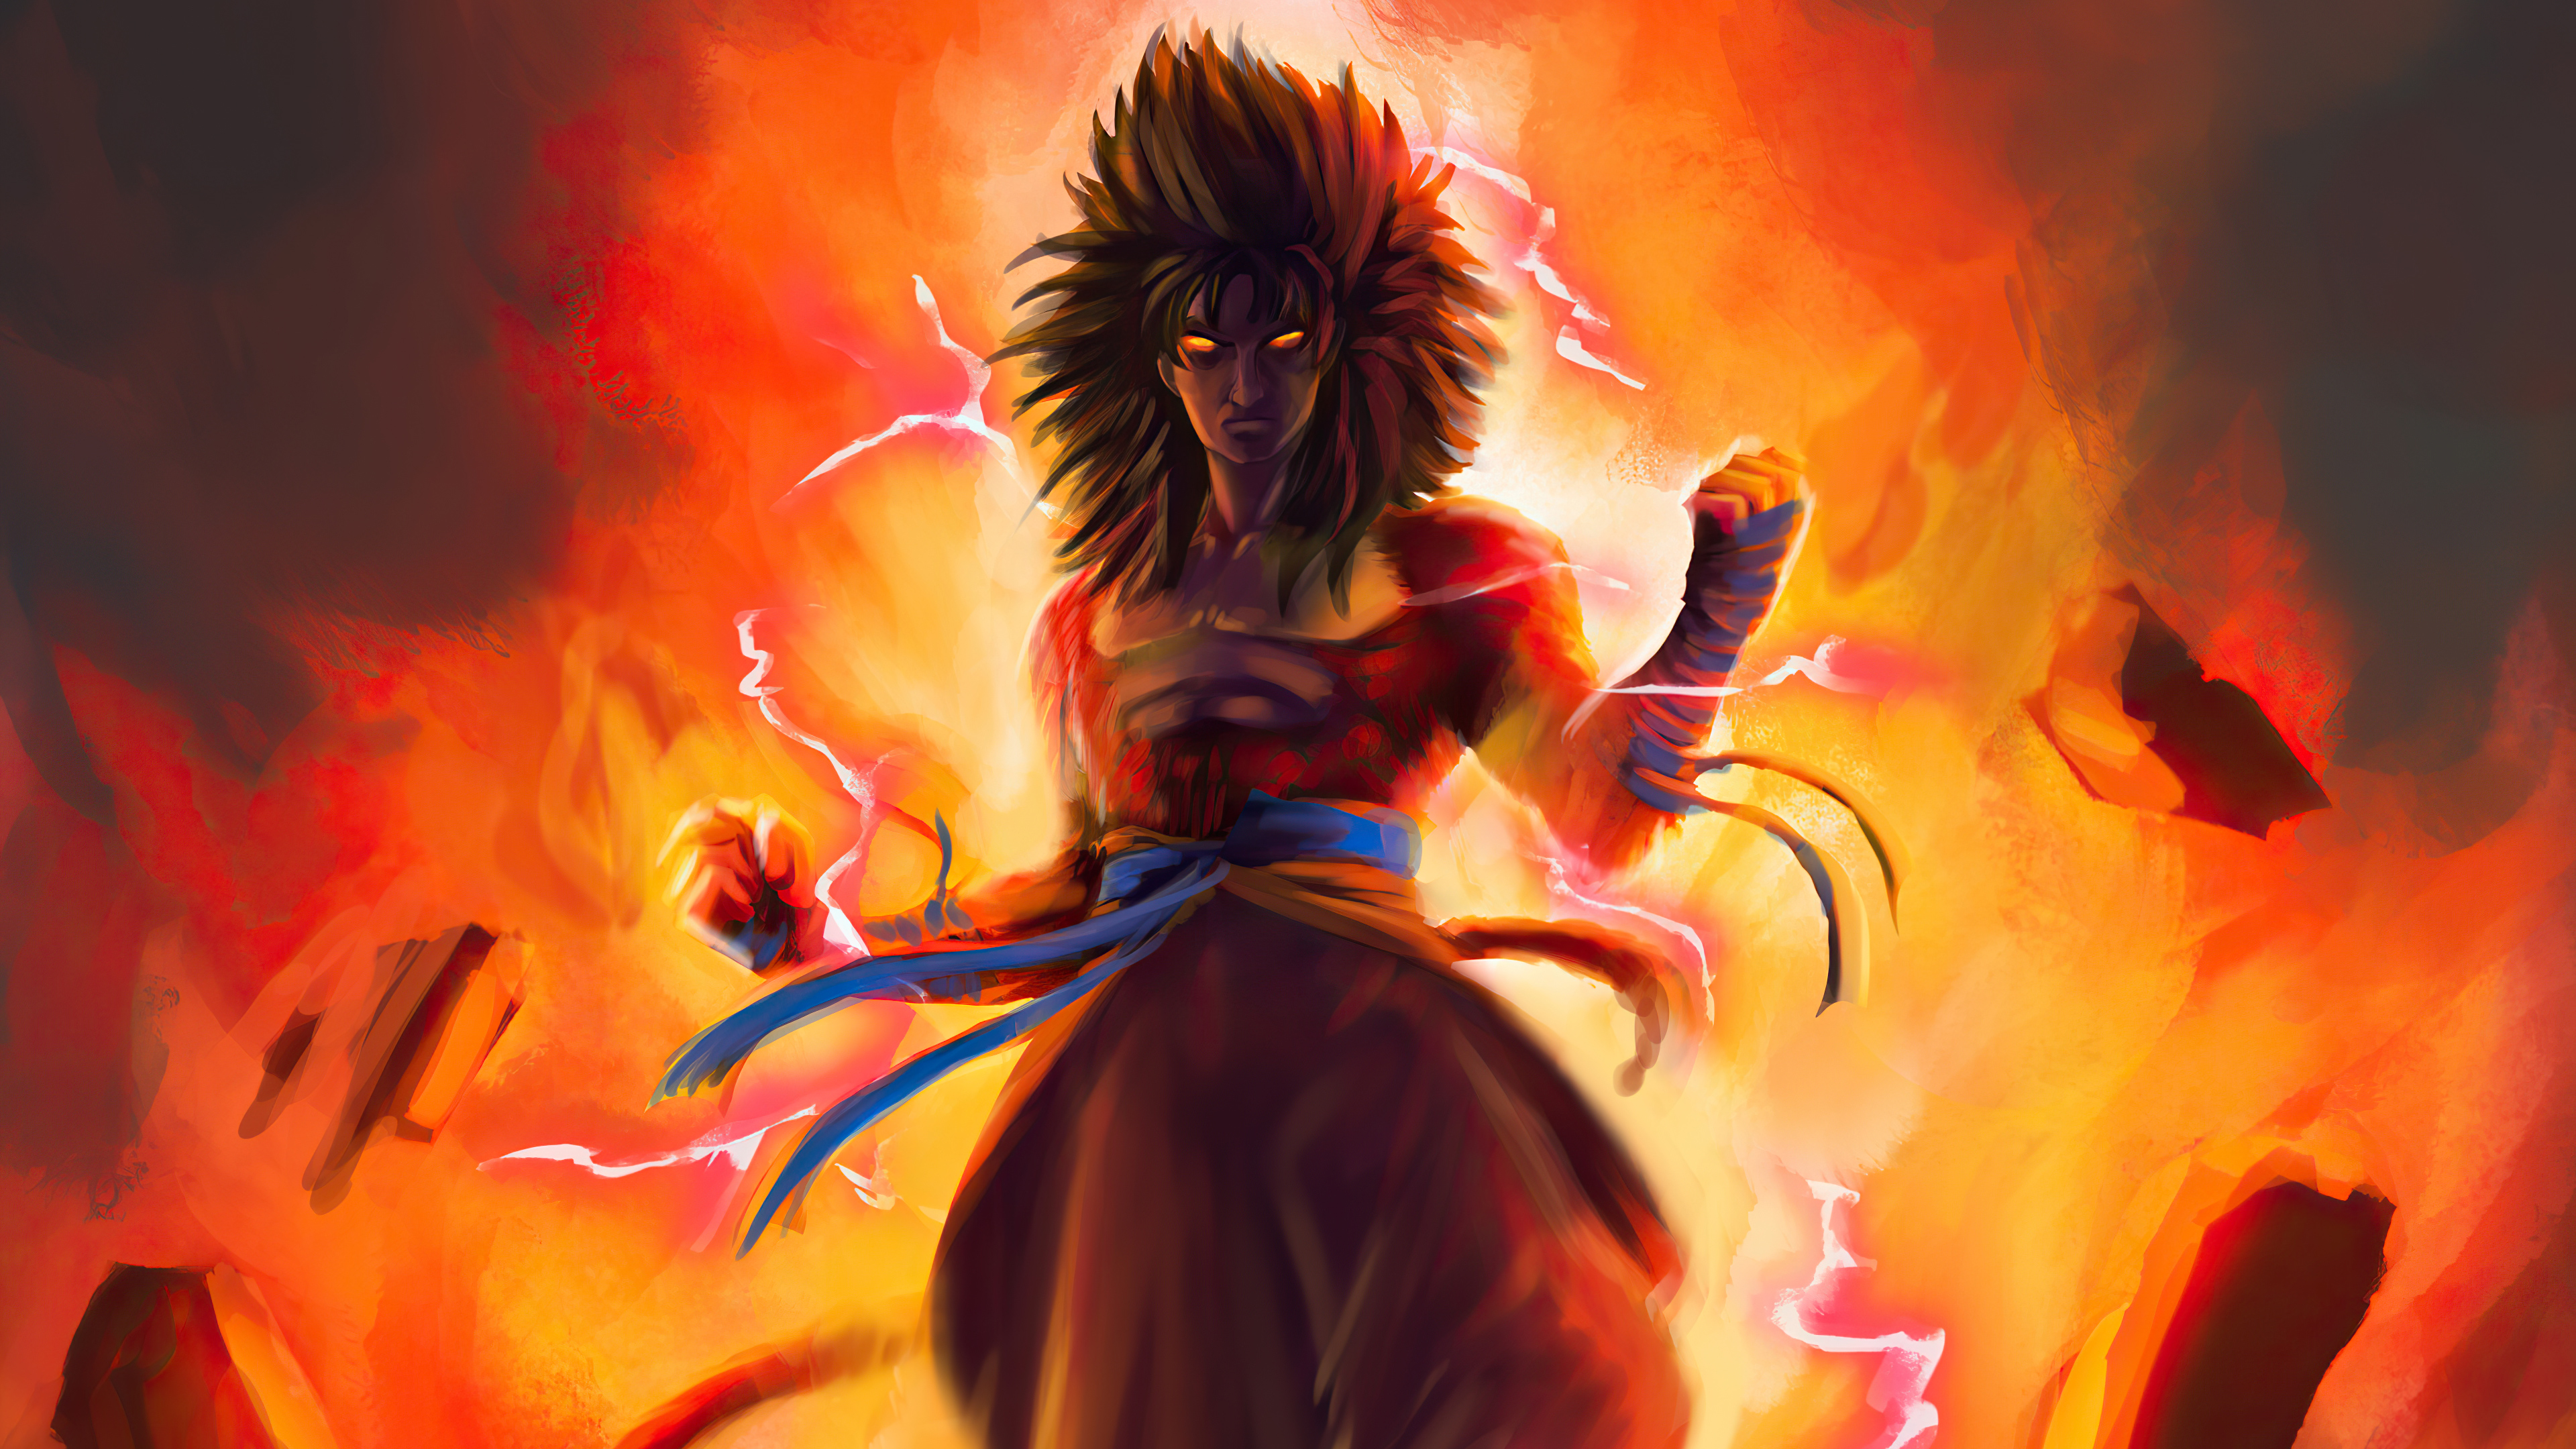 Goku Ssj4 Hd Anime 4k Wallpapers Images Backgrounds Photos And Pictures